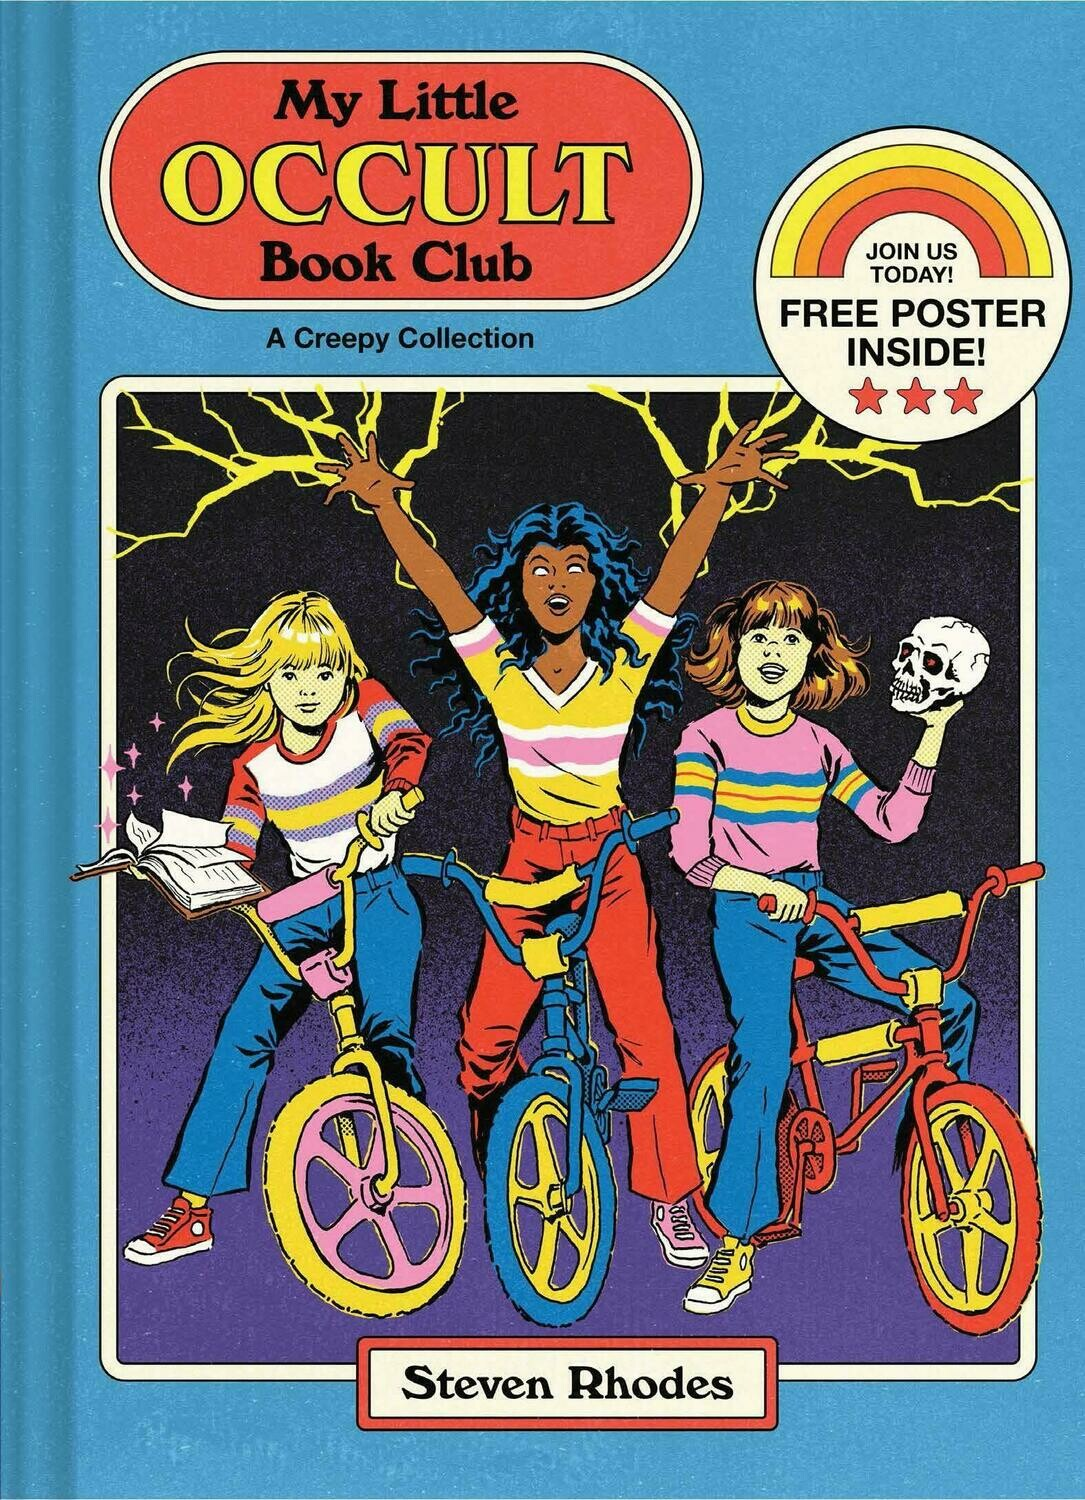 My Little Occult Book Club